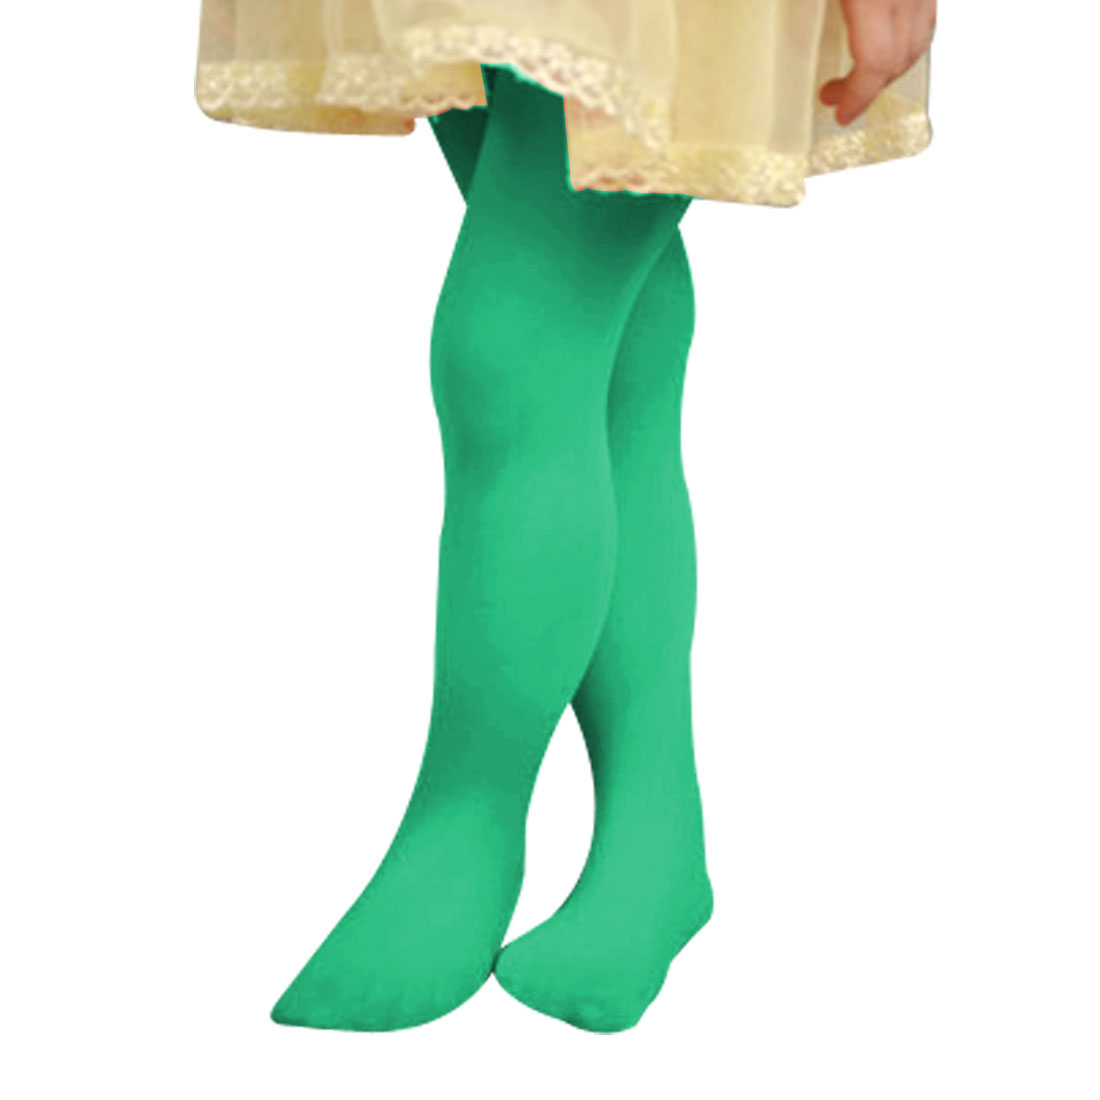 Korea Style Green Stretchy Waist Footed Leggings Tights Size L for 7-11T Girls